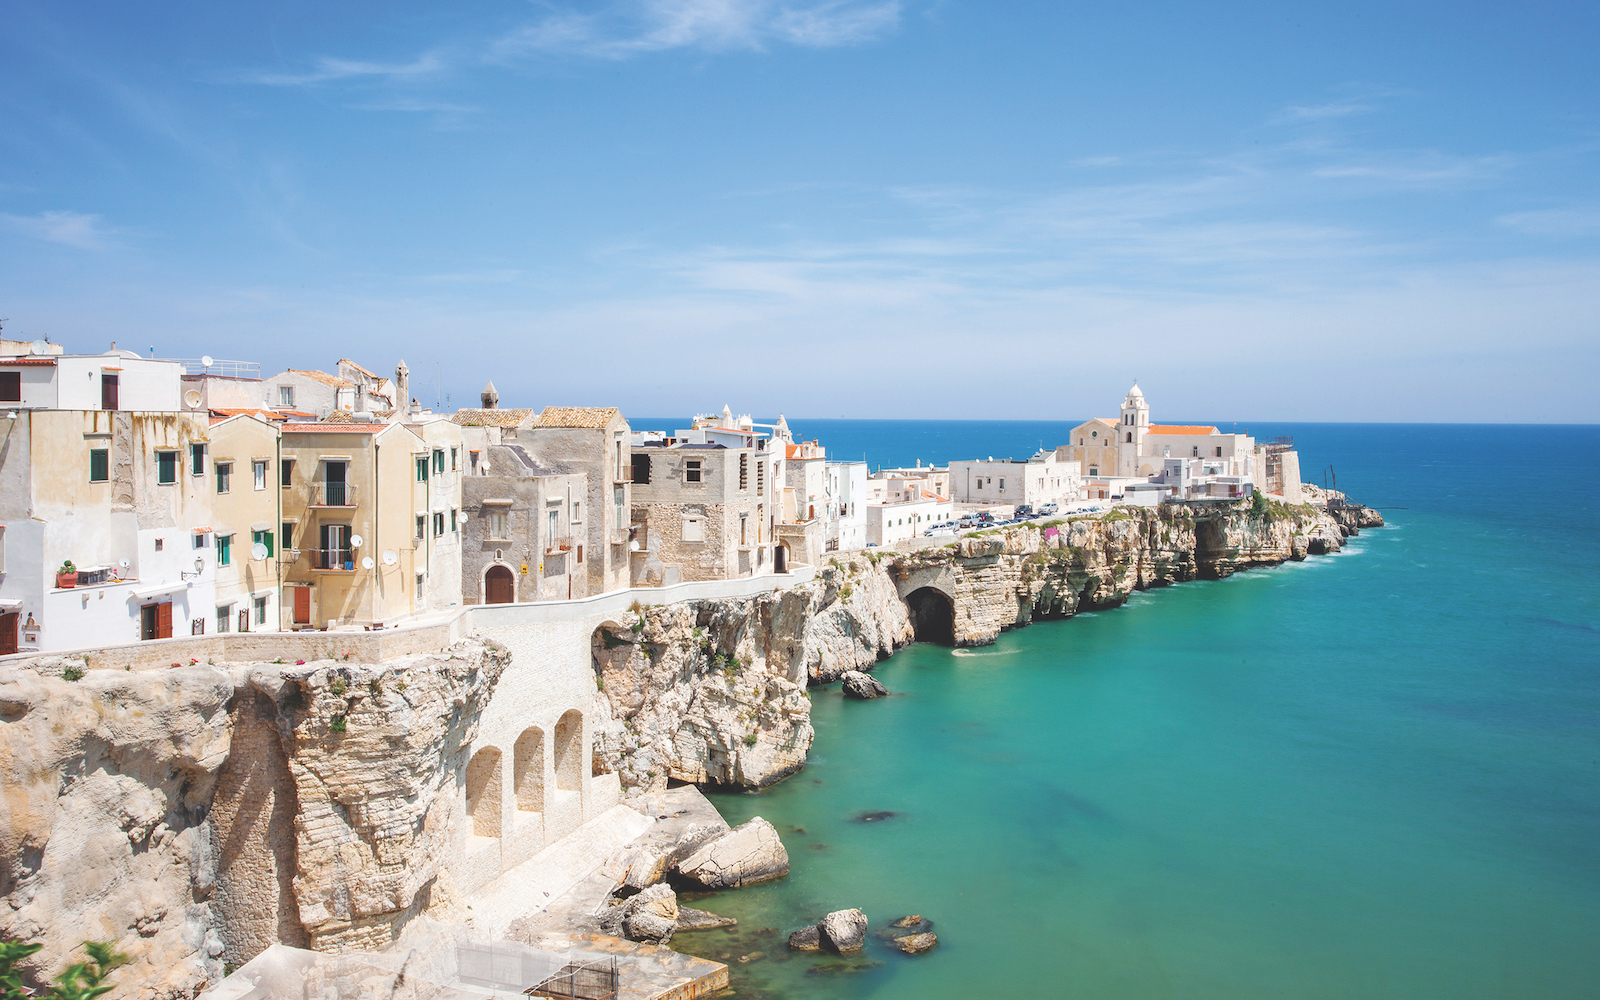 Travel + Leisure's Inaugural World's Best Collection Trip: Come Explore Italy With Us